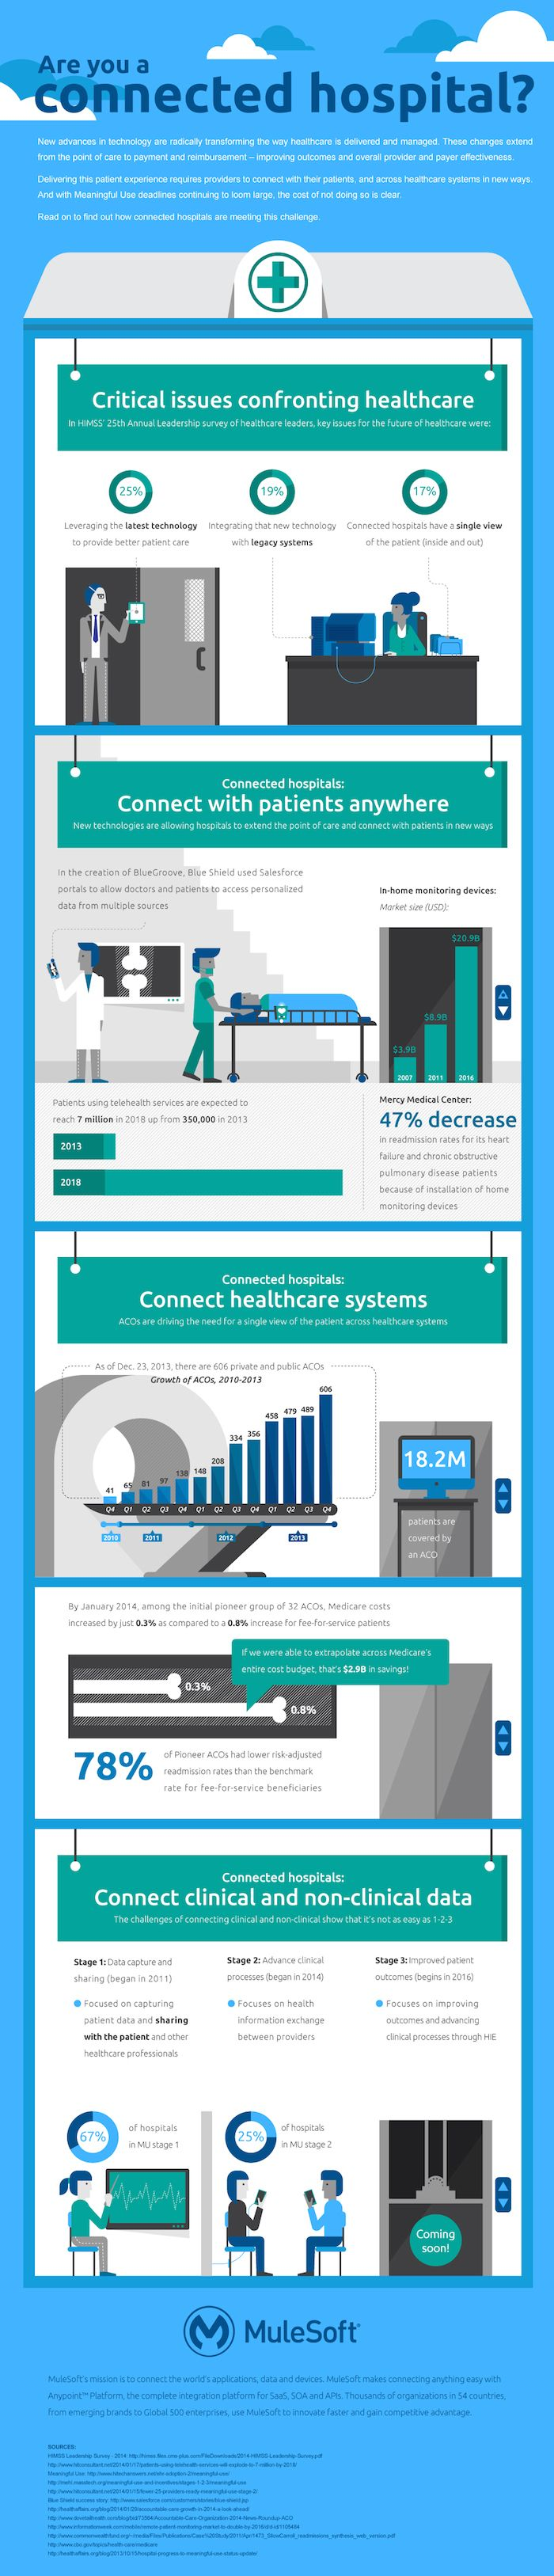 Infographic: Are You A Connected Hospital? #infographic #infographic